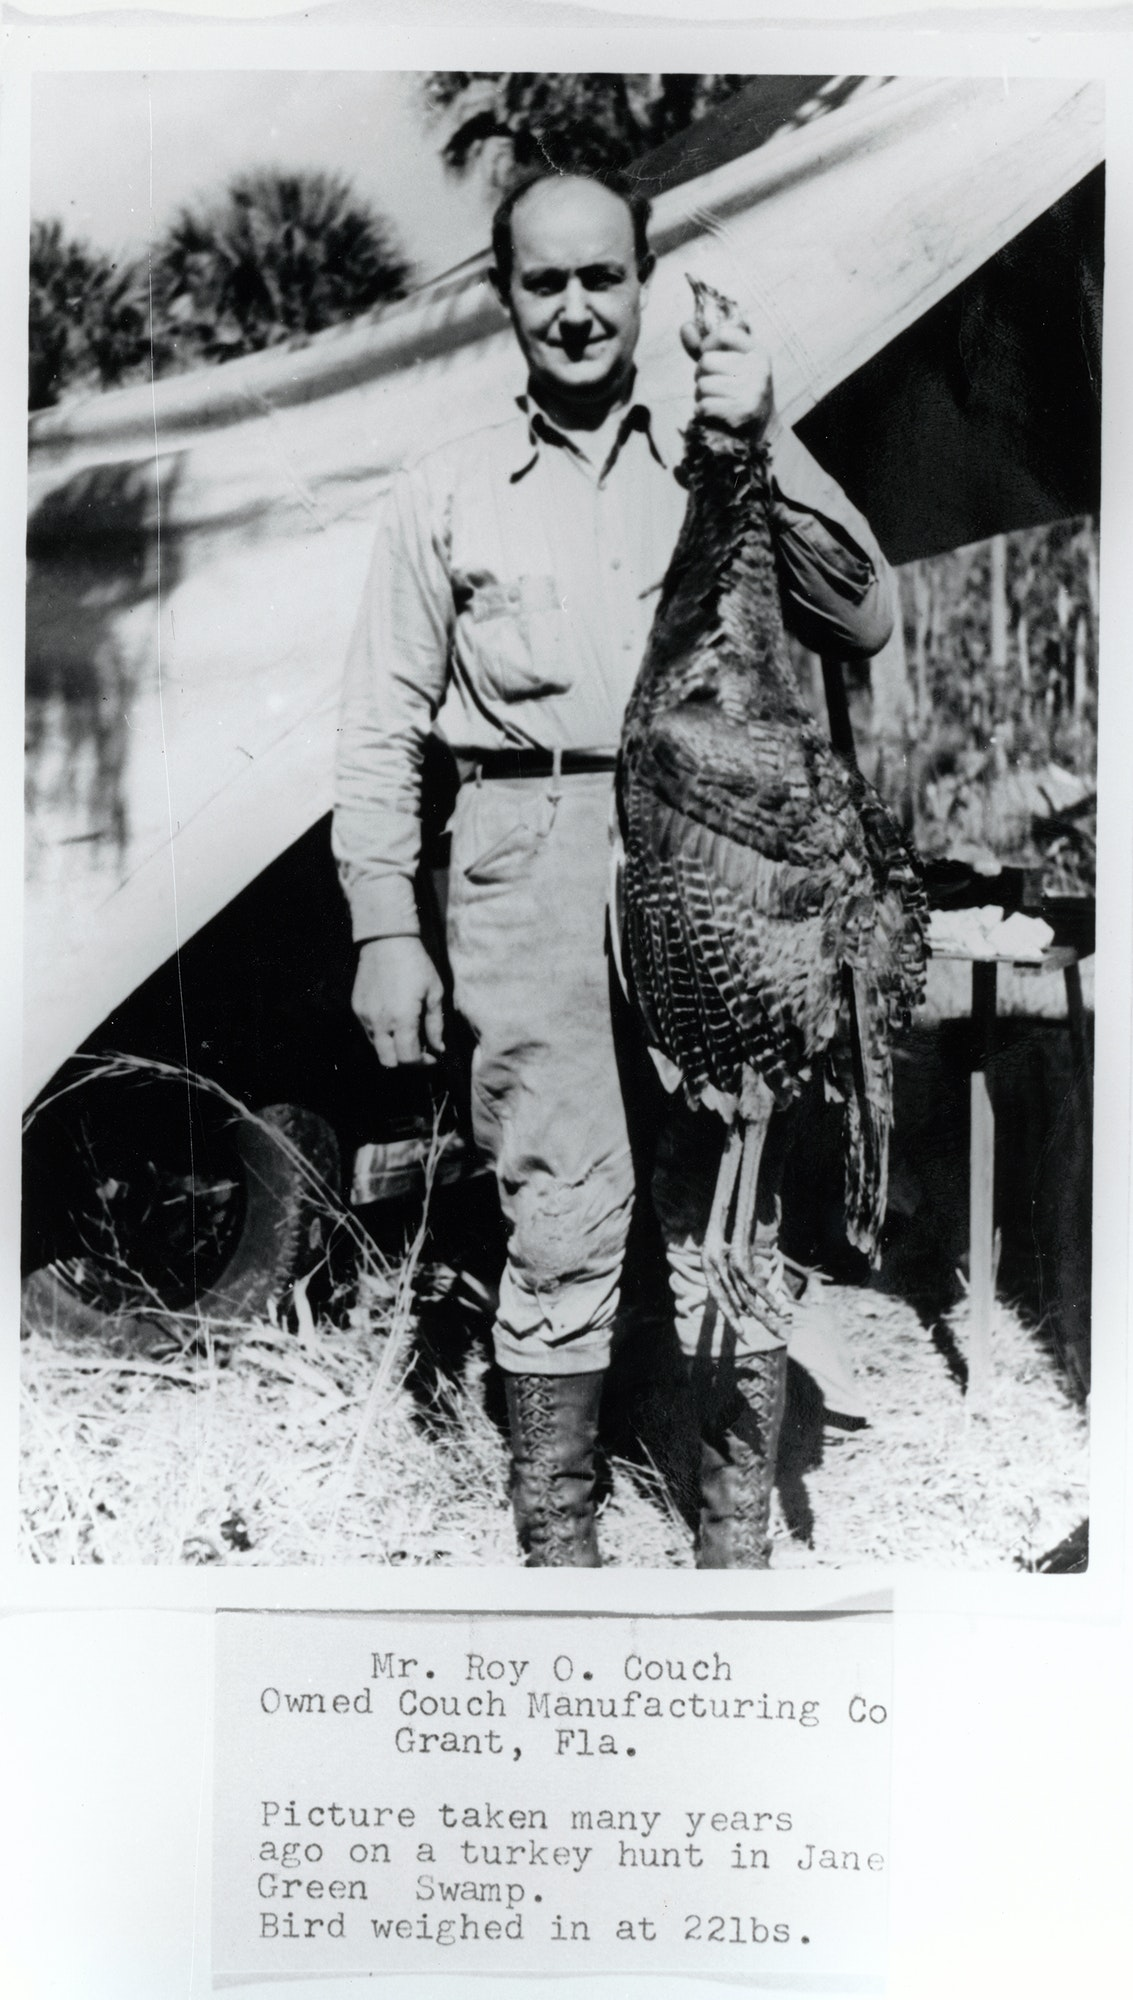 historical photo of Roy O. Couch holding a turkey he caught hunting